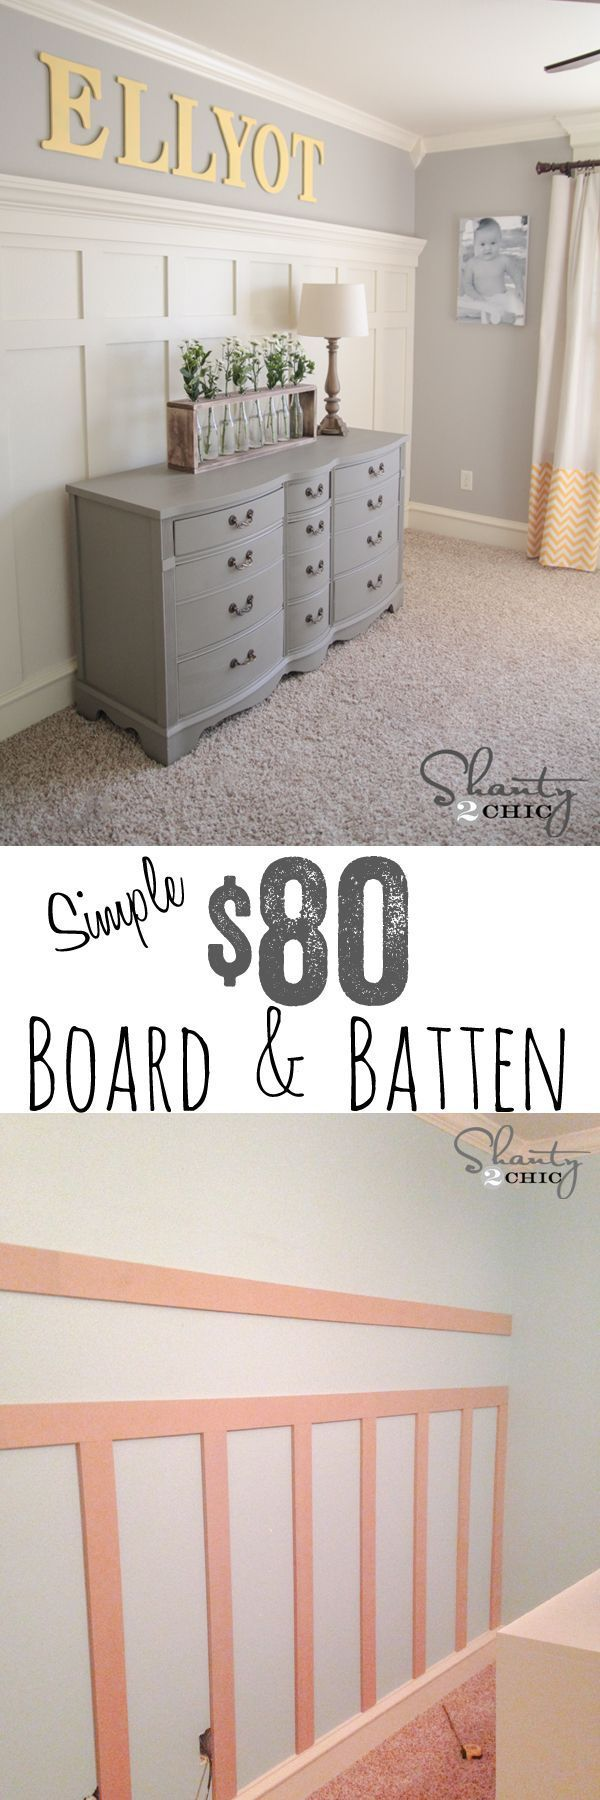 Filed under board and batten wainscoting diy diy projects -  80 Board And Batten Tutorial Giveaway